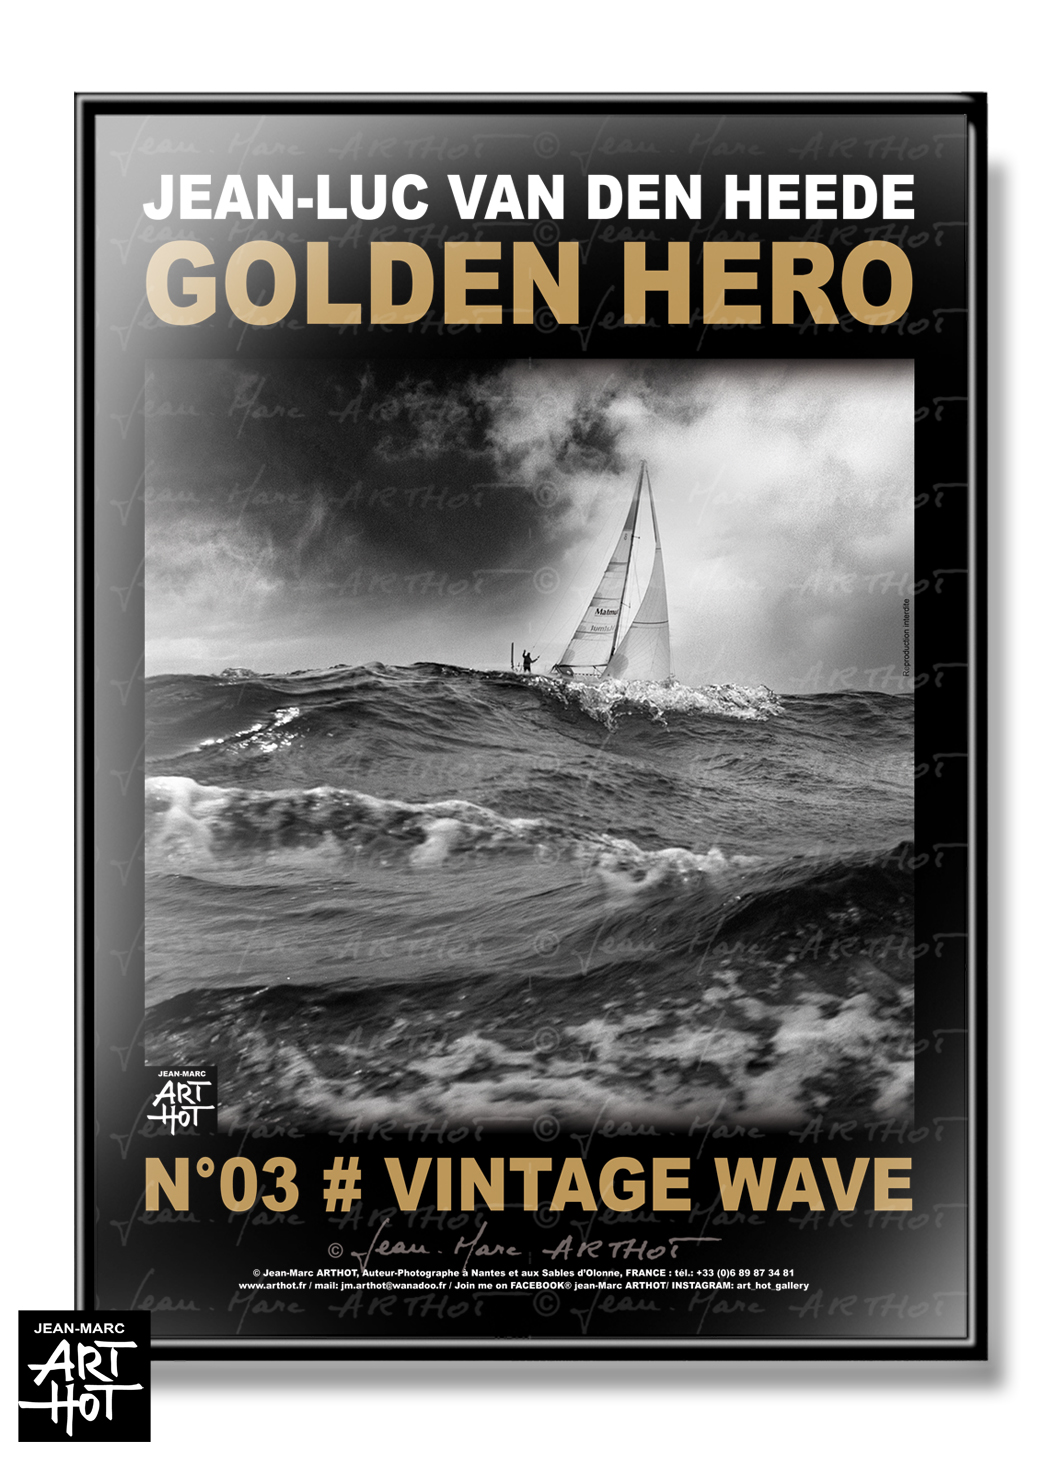 AFFICHE VDH-GOLDEN HERO-N°03-Vintage wave